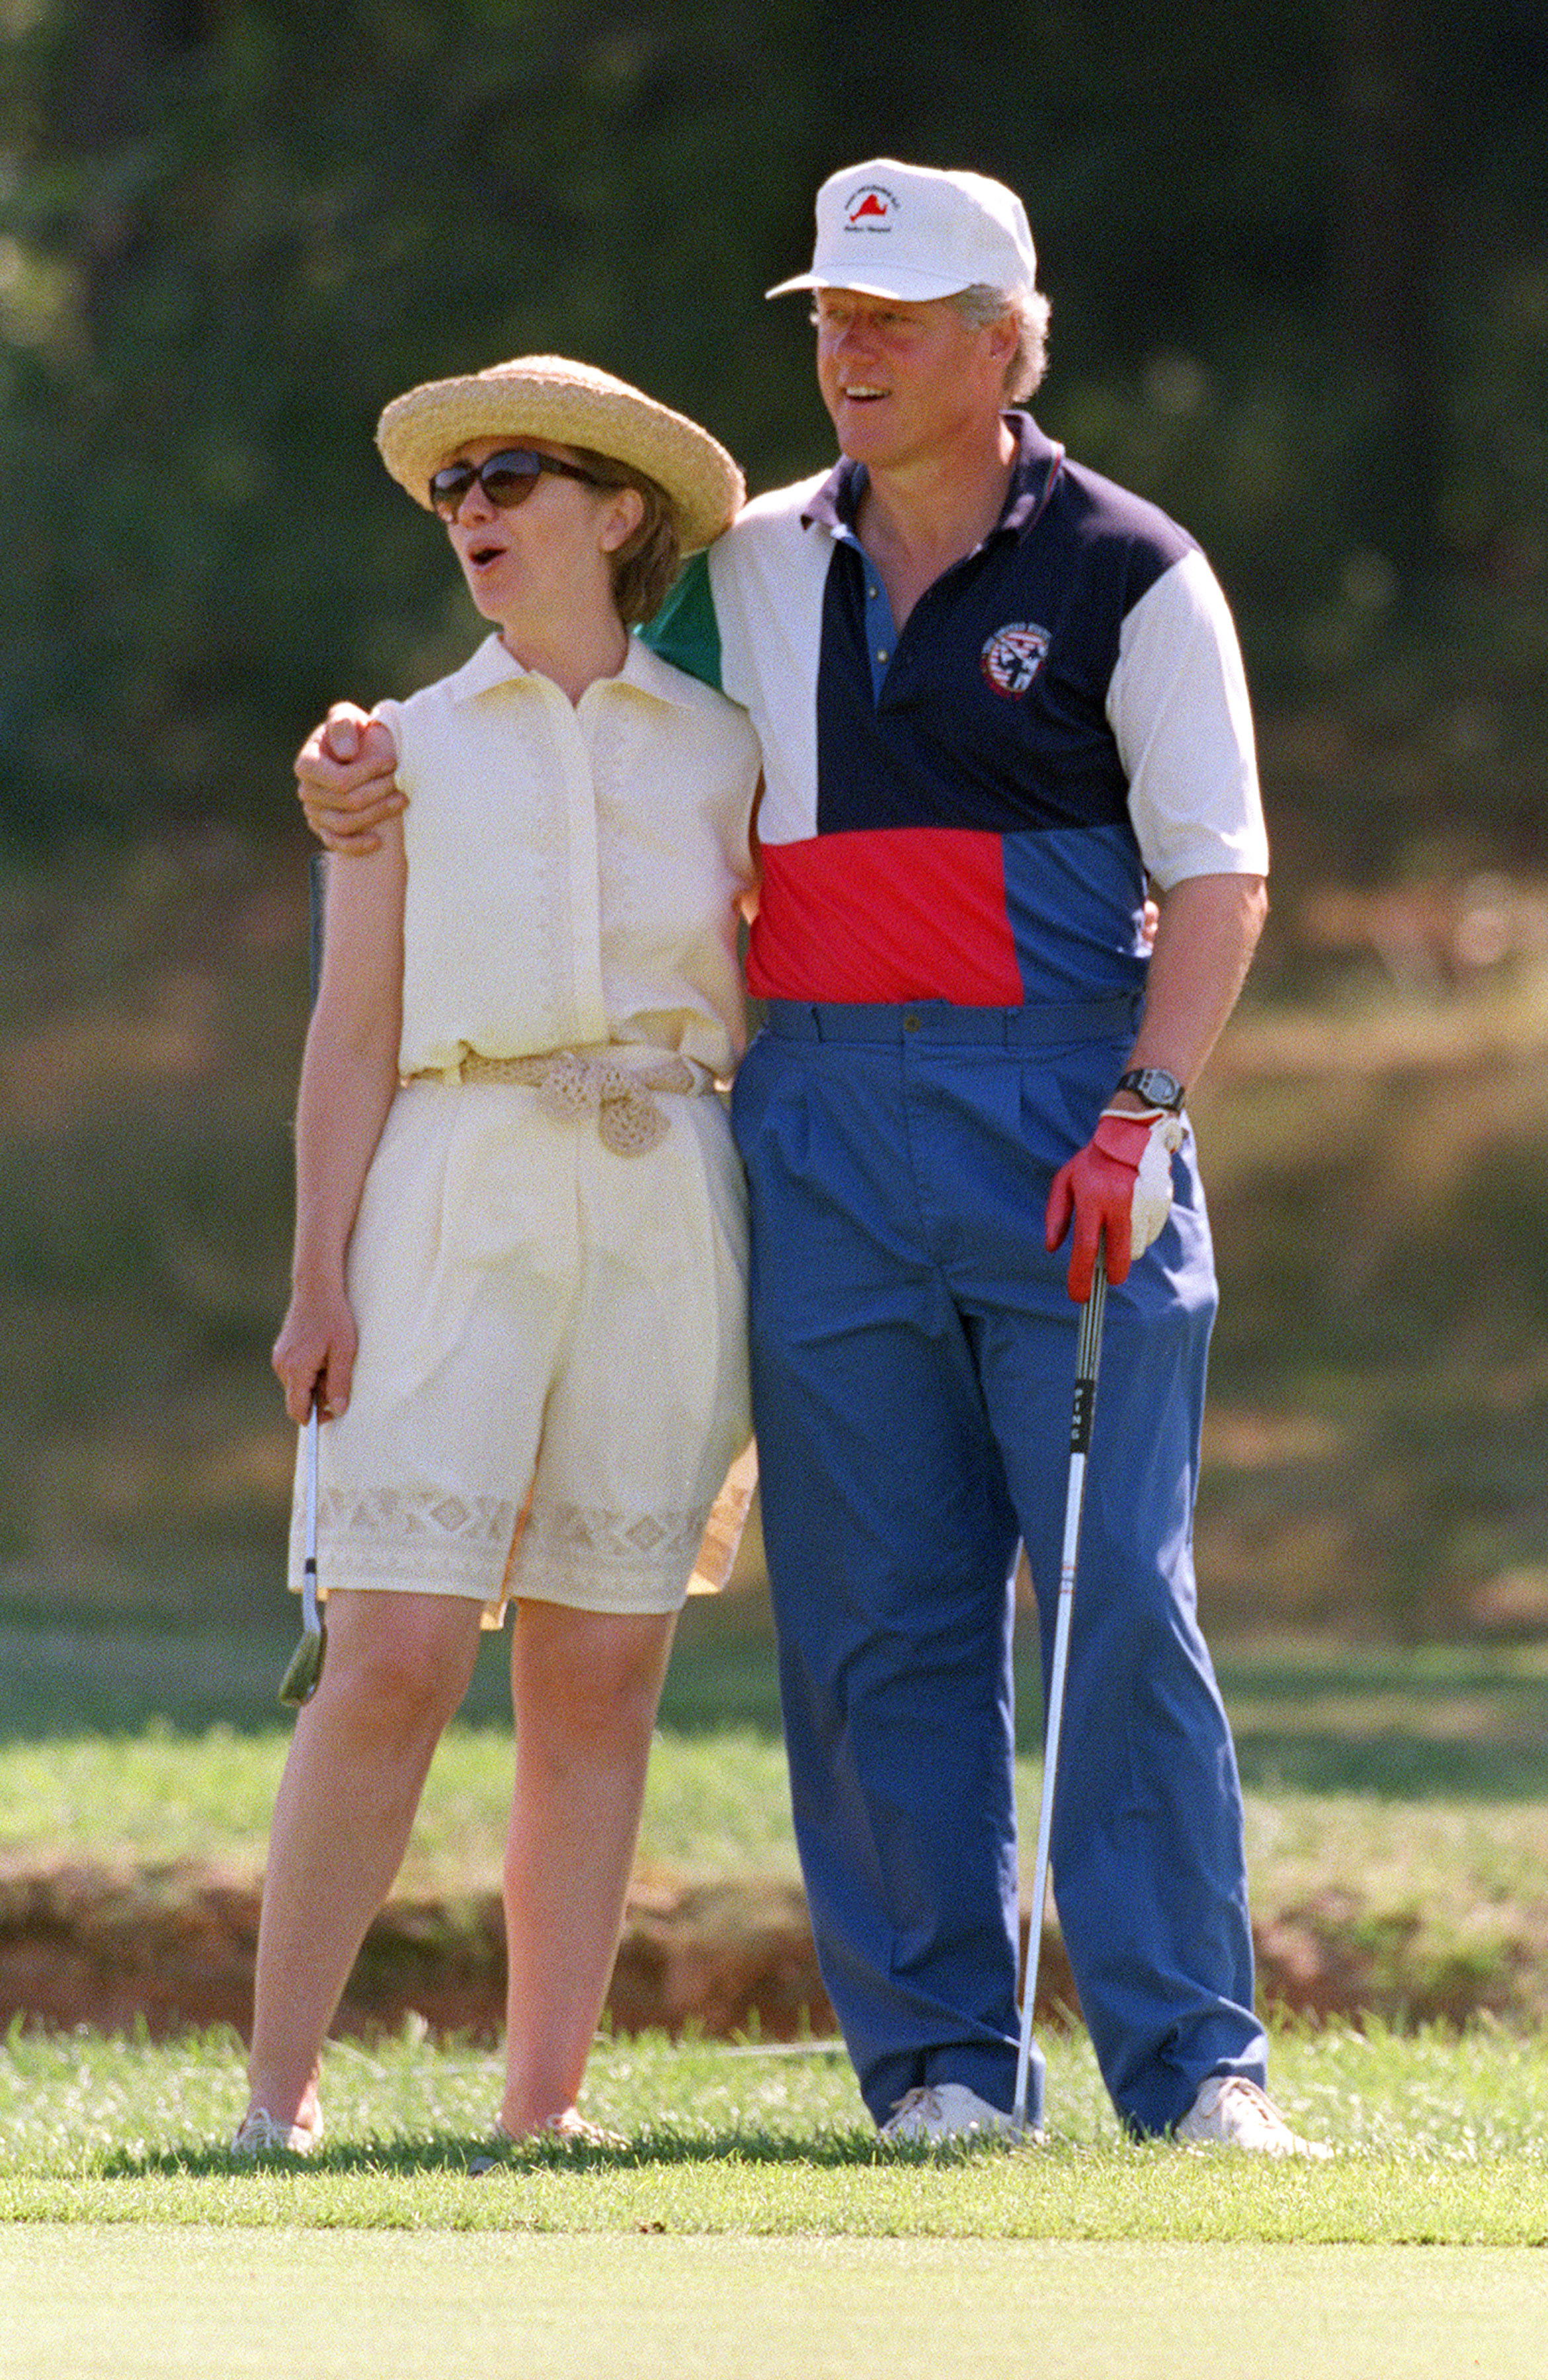 President Bill Clinton and First Lady Hillary Clinton give each other a hug while playing golf at the Mink Meadows Golf Club on Martha's Vineyard Aug. 27,1993 in Massachusetts.